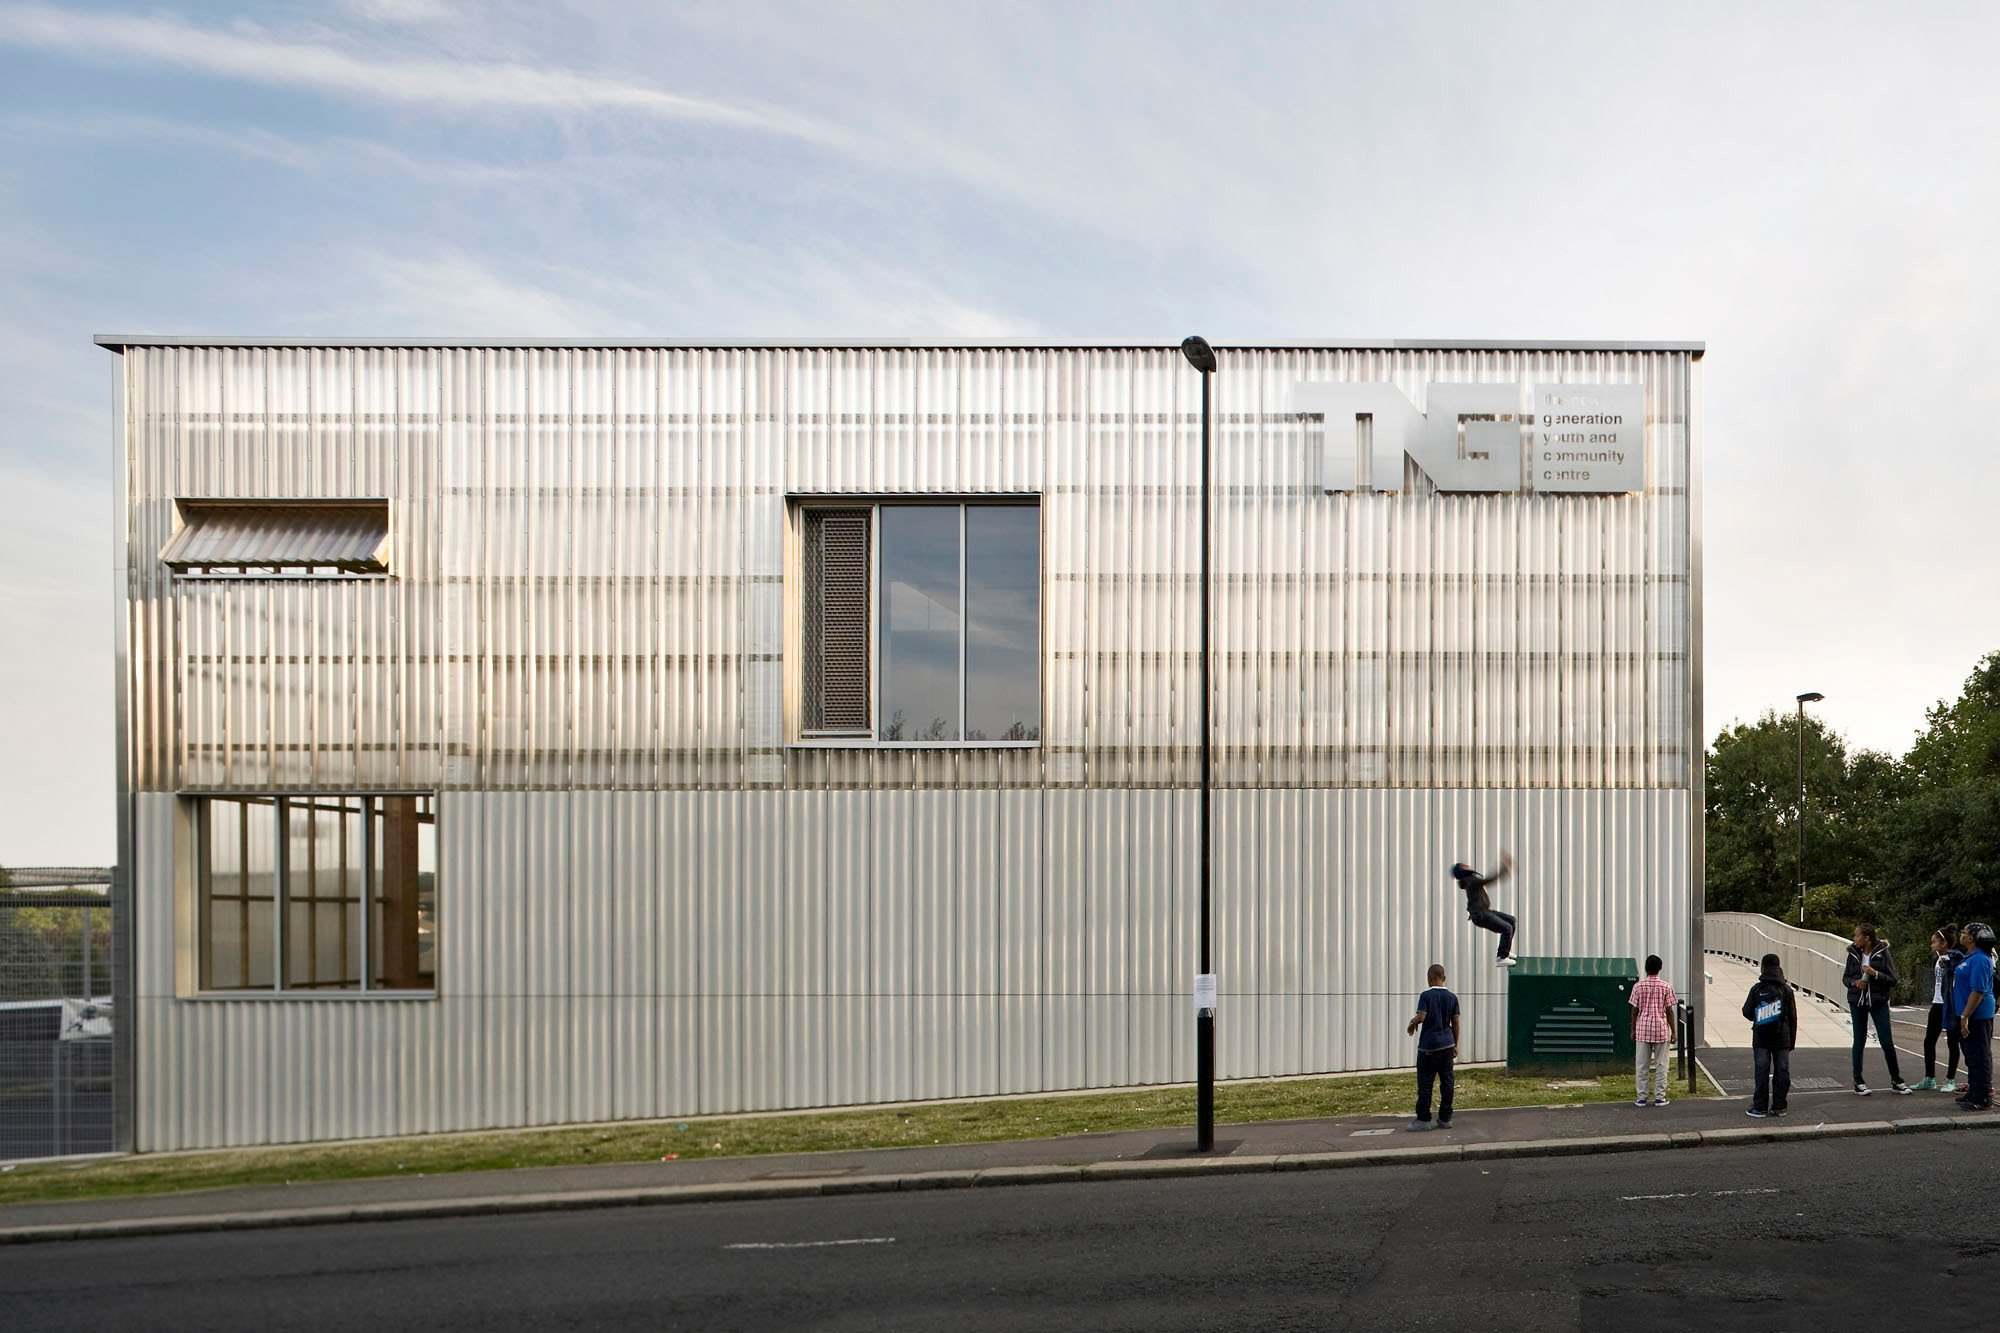 Tng youth and community centre in london fassade sport for Architektur 4 1